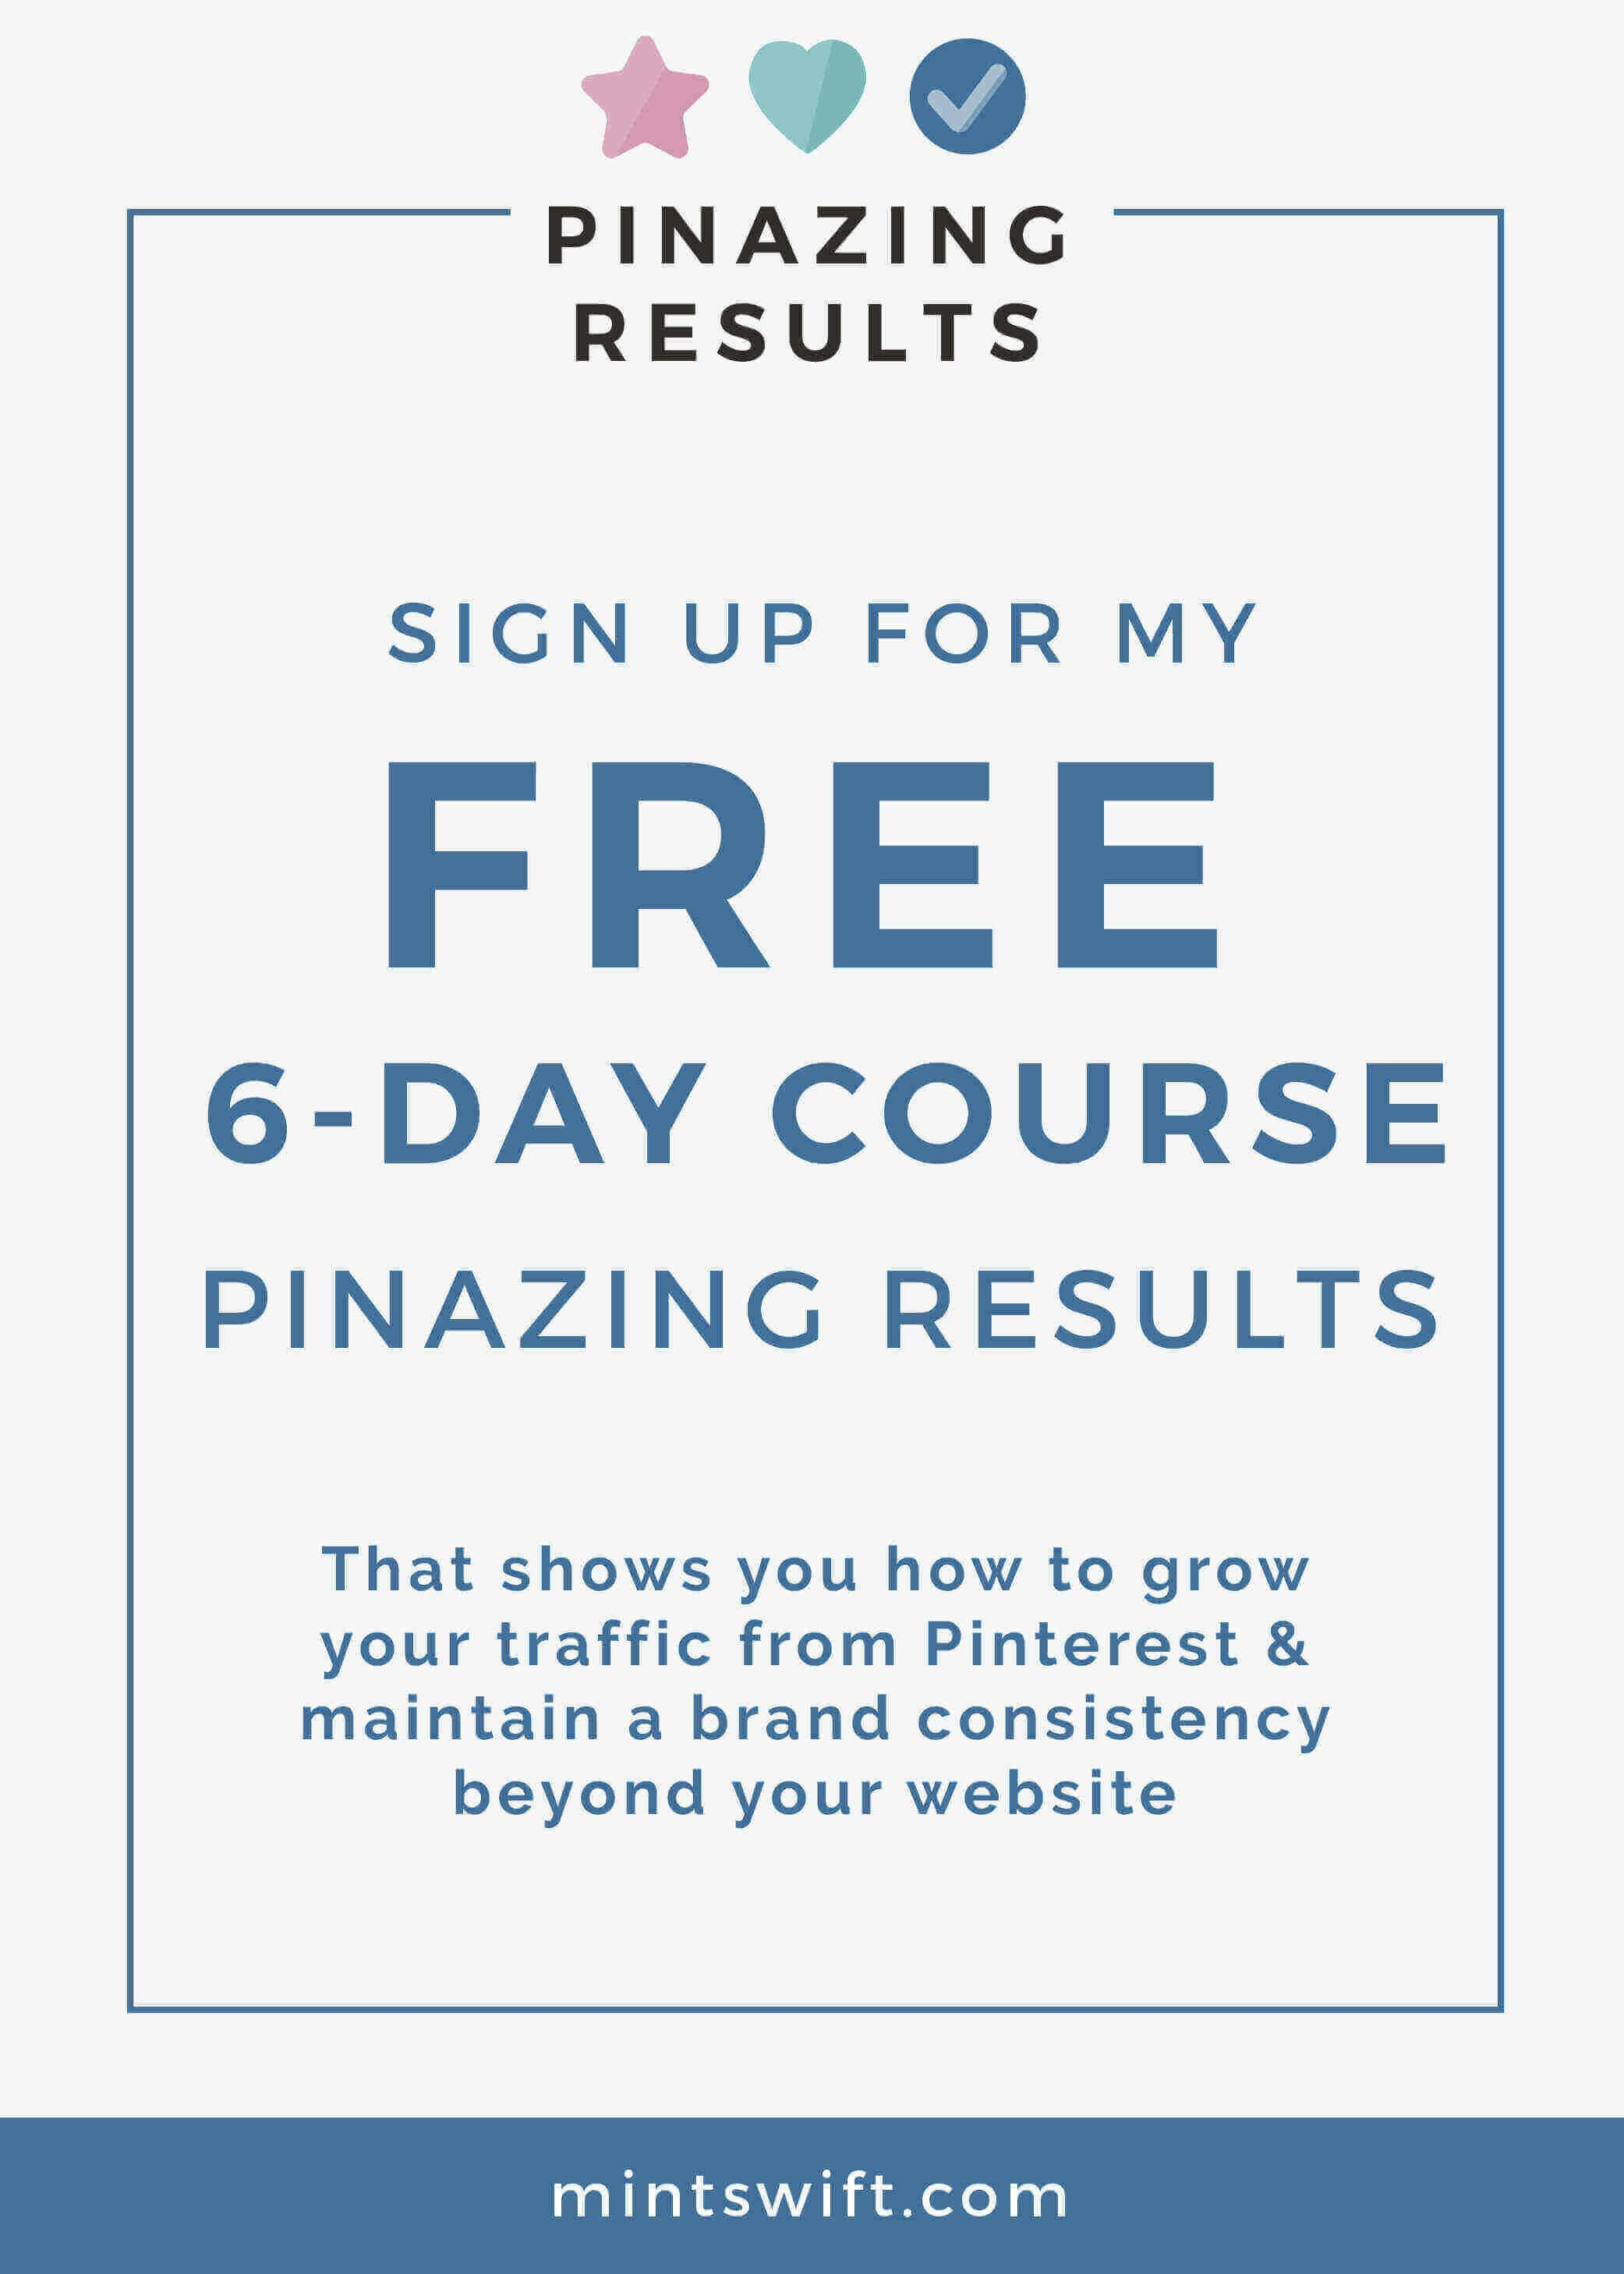 Want to grow your audience, traffic and maintain brand consistency beyond your website? Pinazing Results a FREE 6-day email course is for YOU! This course is perfect for bloggers and online business owners who are tired of wasting time figuring out how to make Pinterest work for your business, wasting time on strategies that don't work and spending hours on Pinterest every single day! This free course shares the step-by-step strategies to grow your traffic from Pinterest, building your email list, brand awareness quickly, and effectively. Click through to sign up! ...It's FREE!